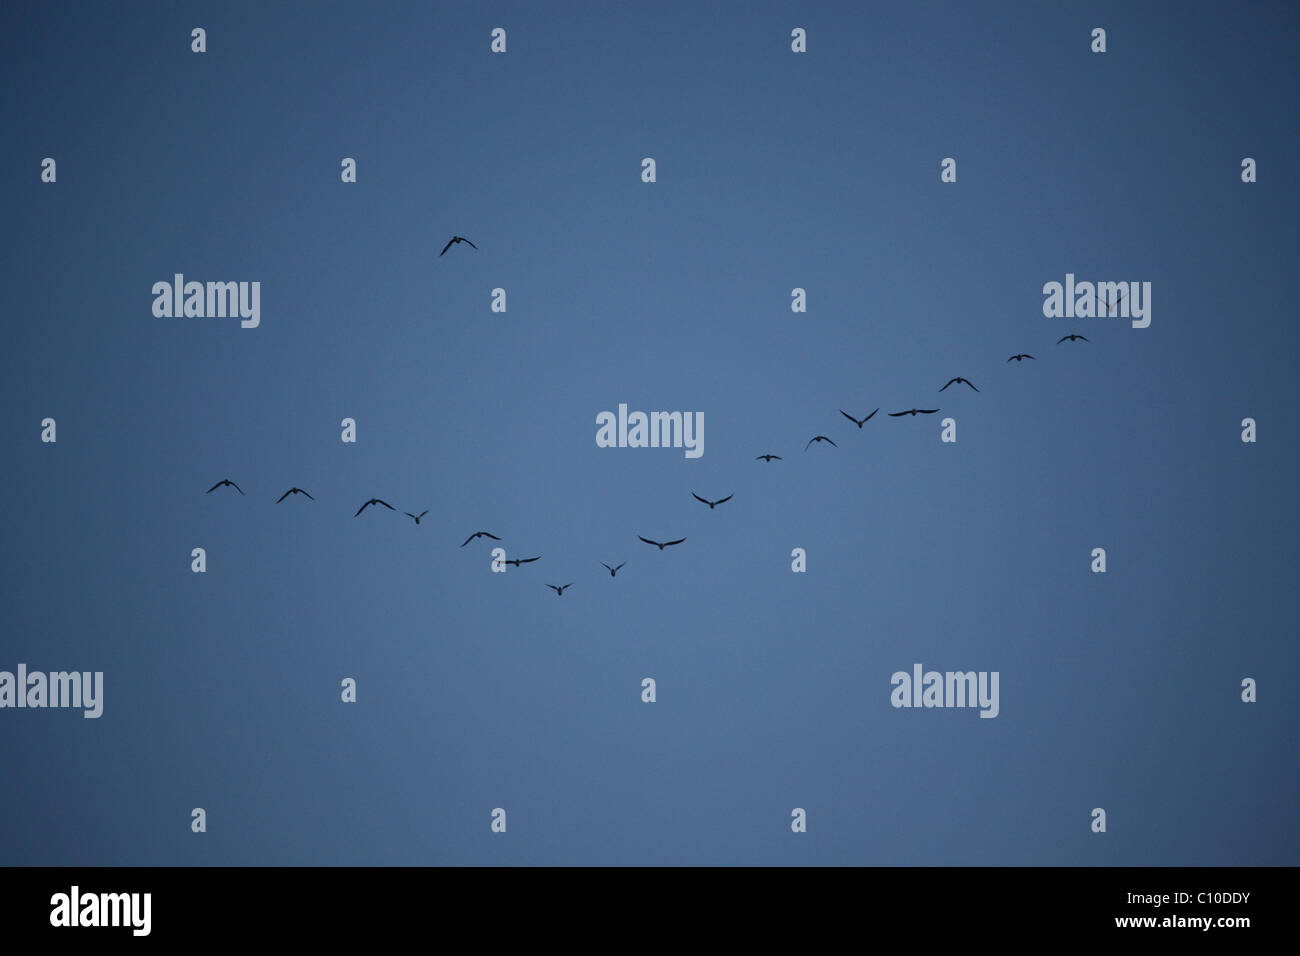 formation birds stockfotos formation birds bilder alamy. Black Bedroom Furniture Sets. Home Design Ideas